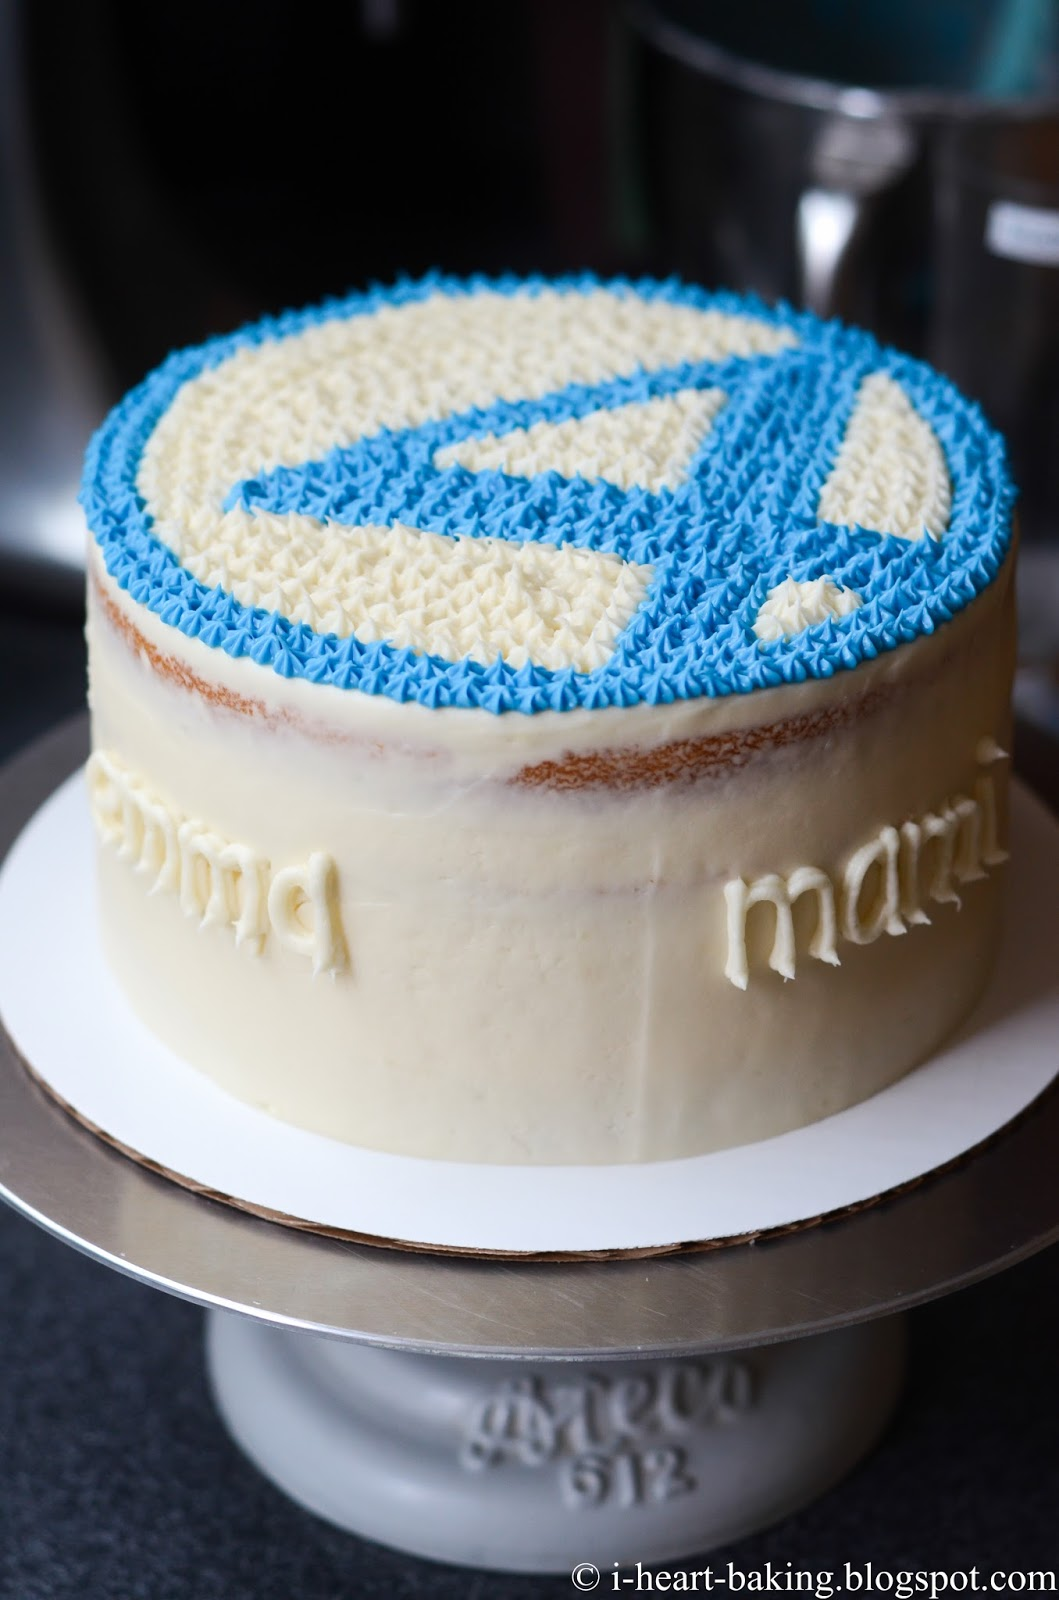 The Frosting With Royal Blue Food Coloring And Used A Medium Star Tip To Fill In The Rest Of The Fantastic Four Logo As Well As The Sides Of The Cake